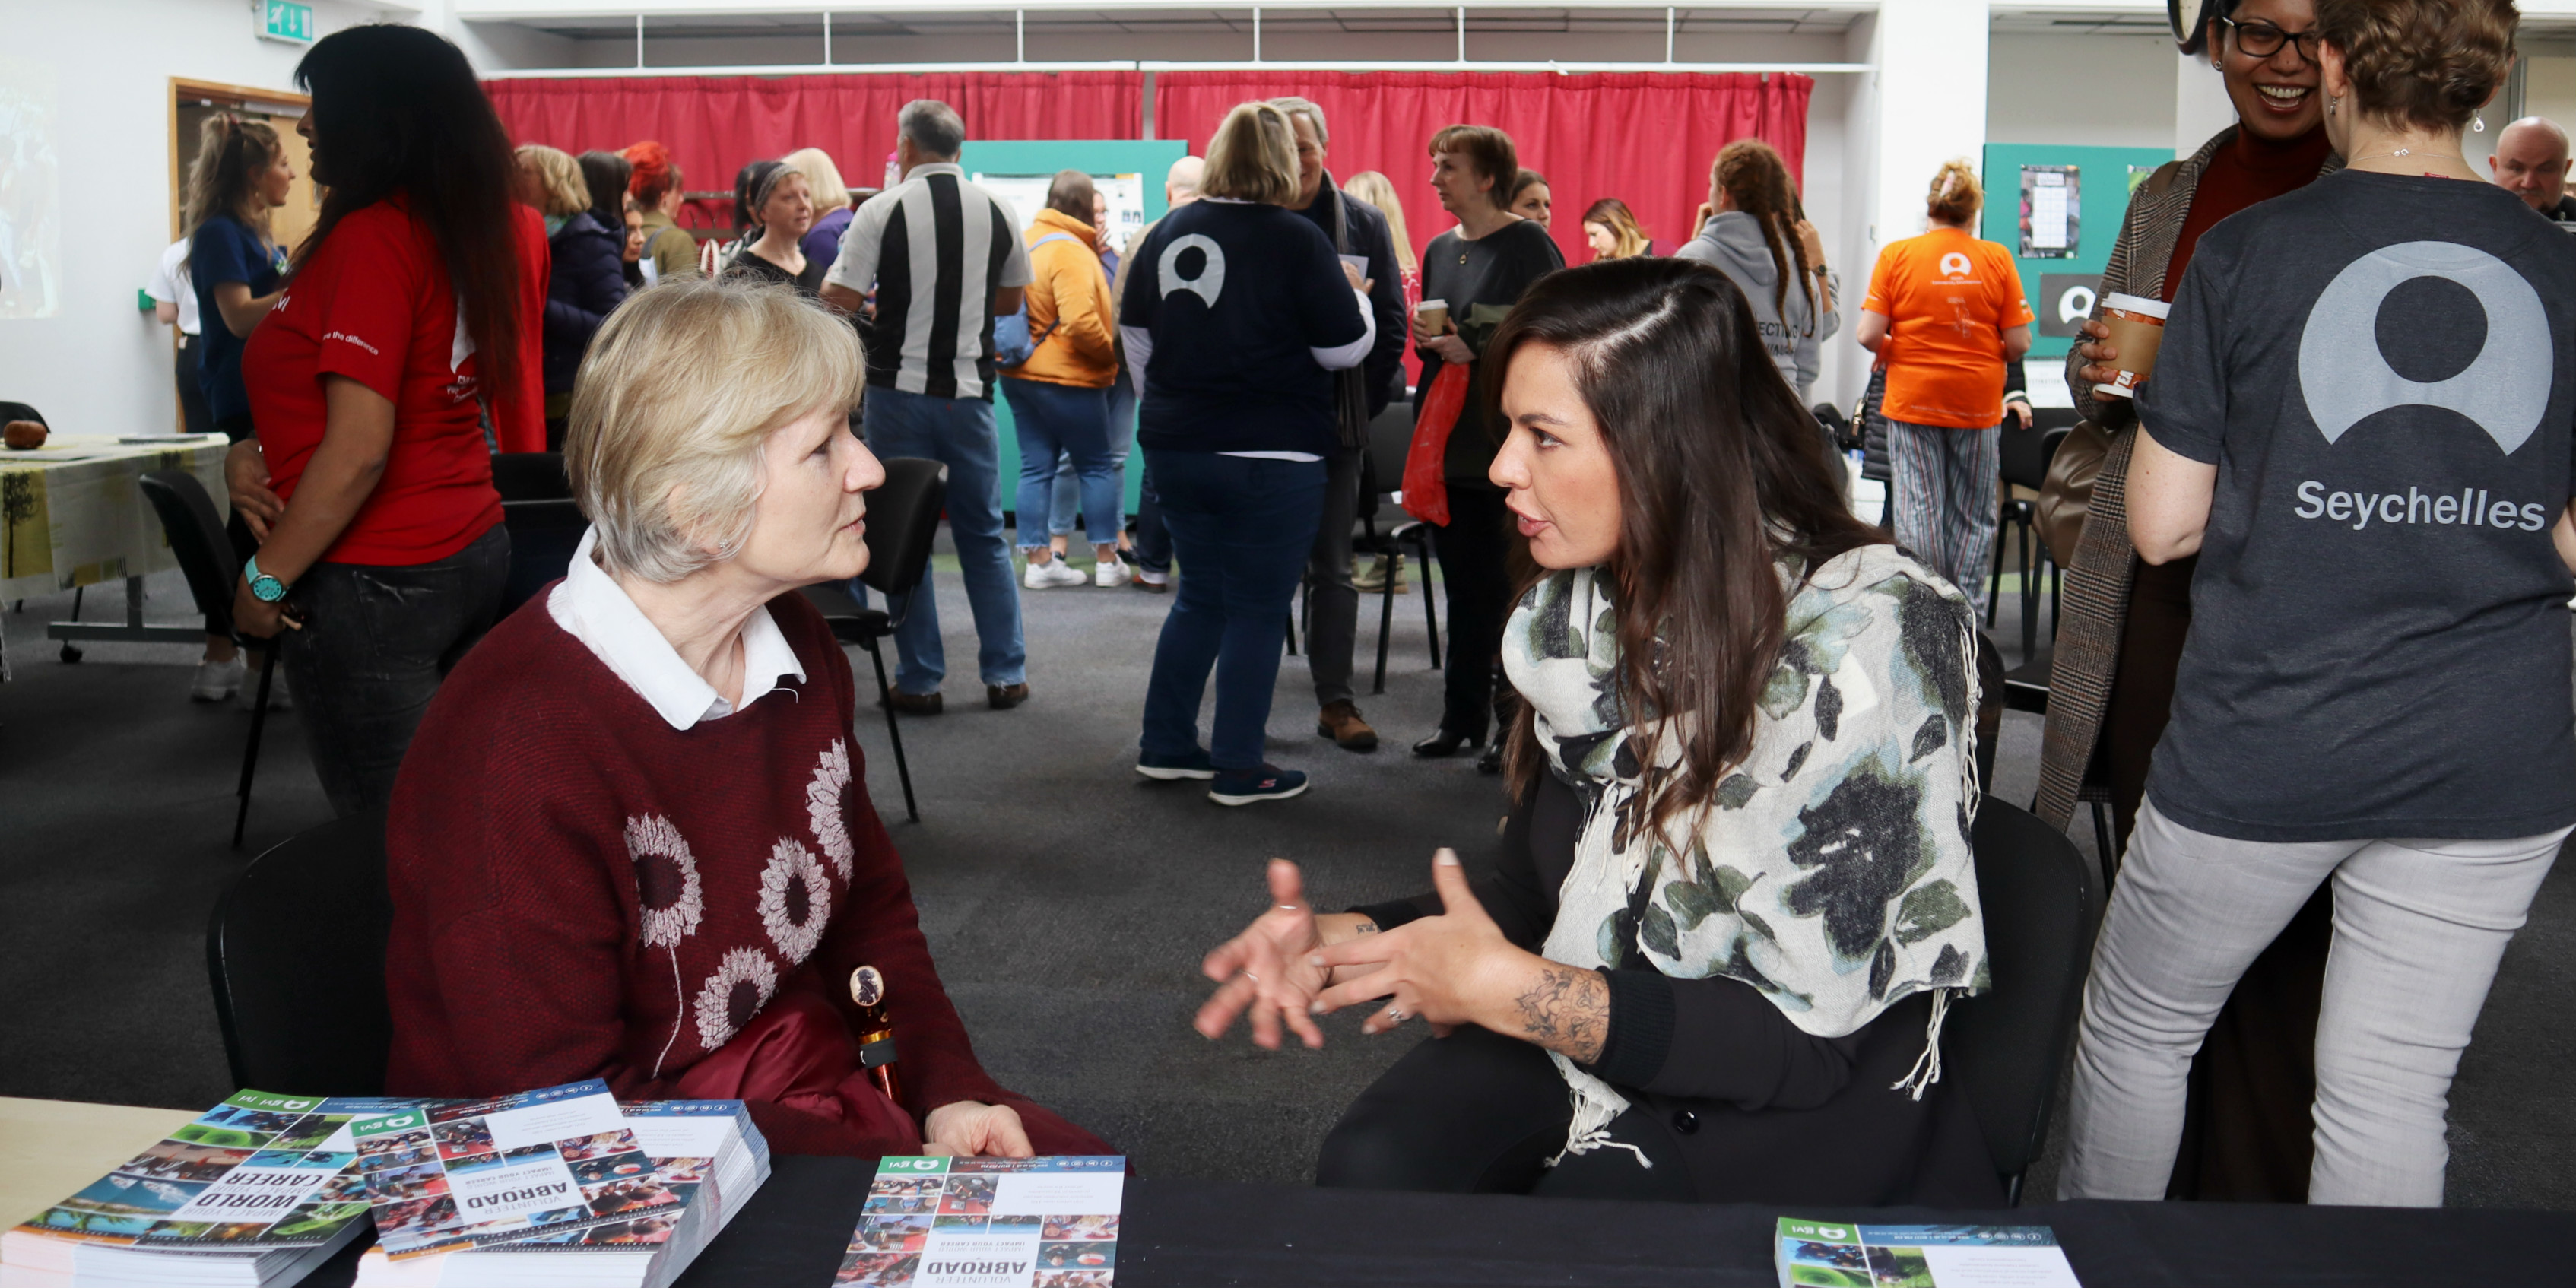 A GVI staff member chats to a parent about the many teen volunteering opportunities with GVI, at an Open Day in London.